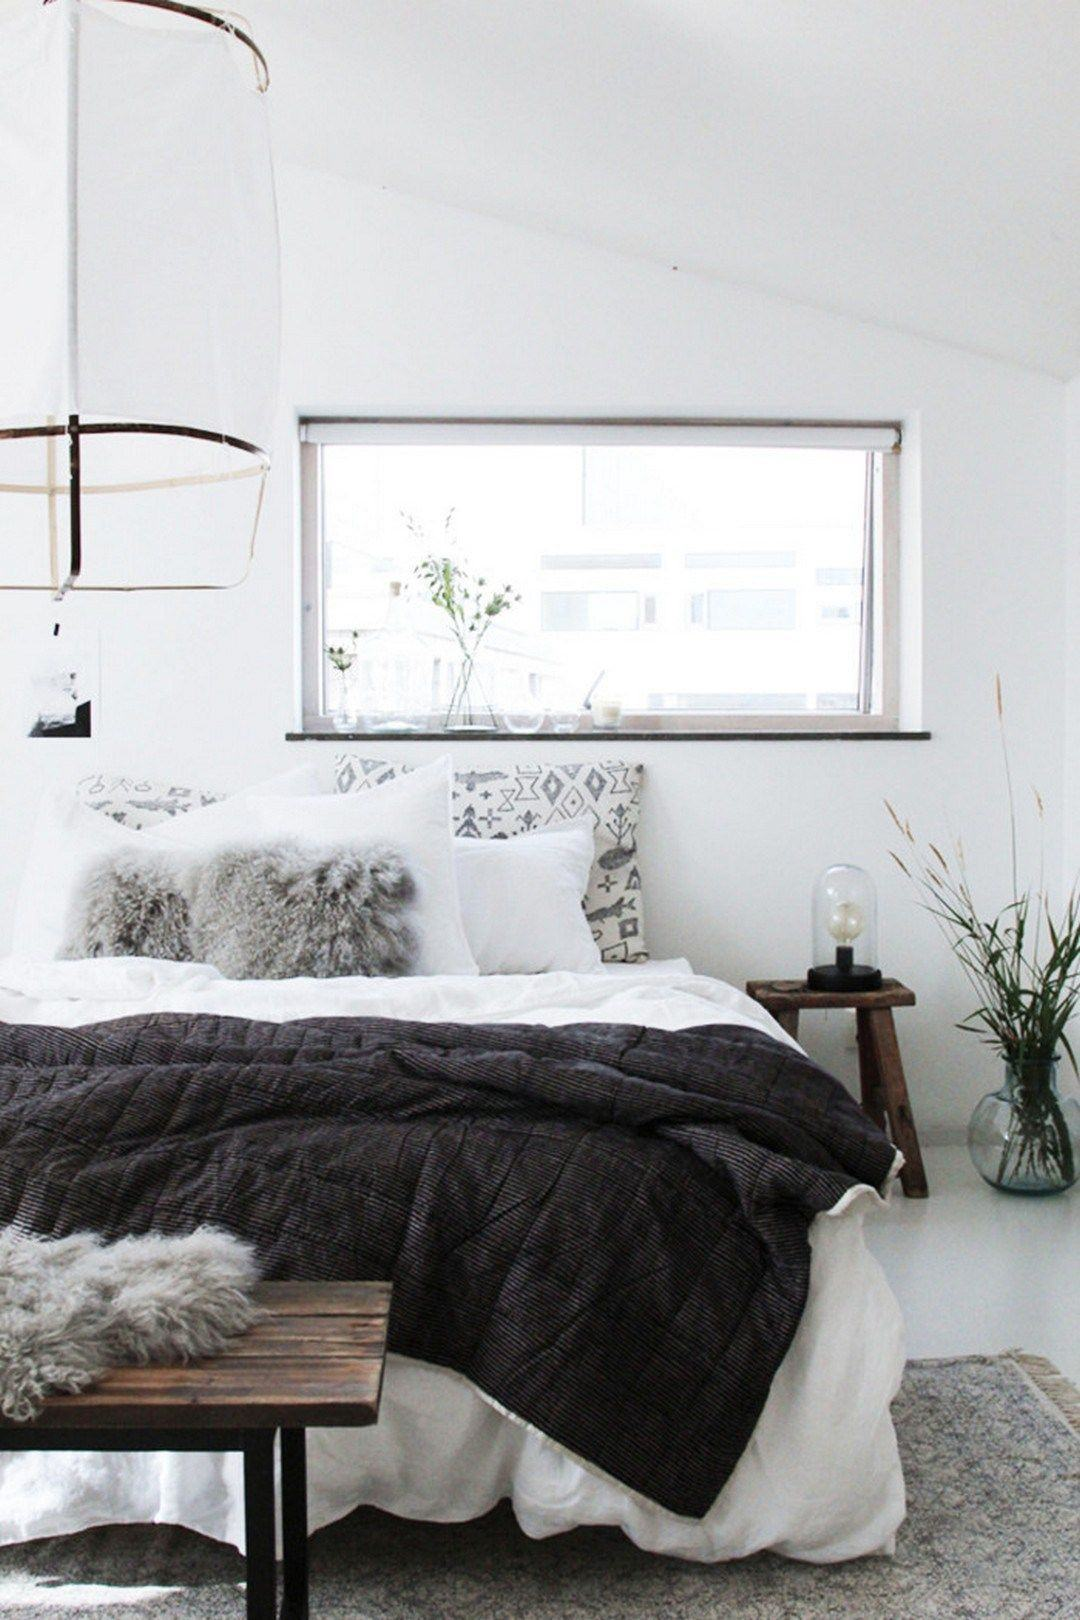 Scandinavian Bedroom Inspiration White Black Fluffy Cozy Bedding Minimalist